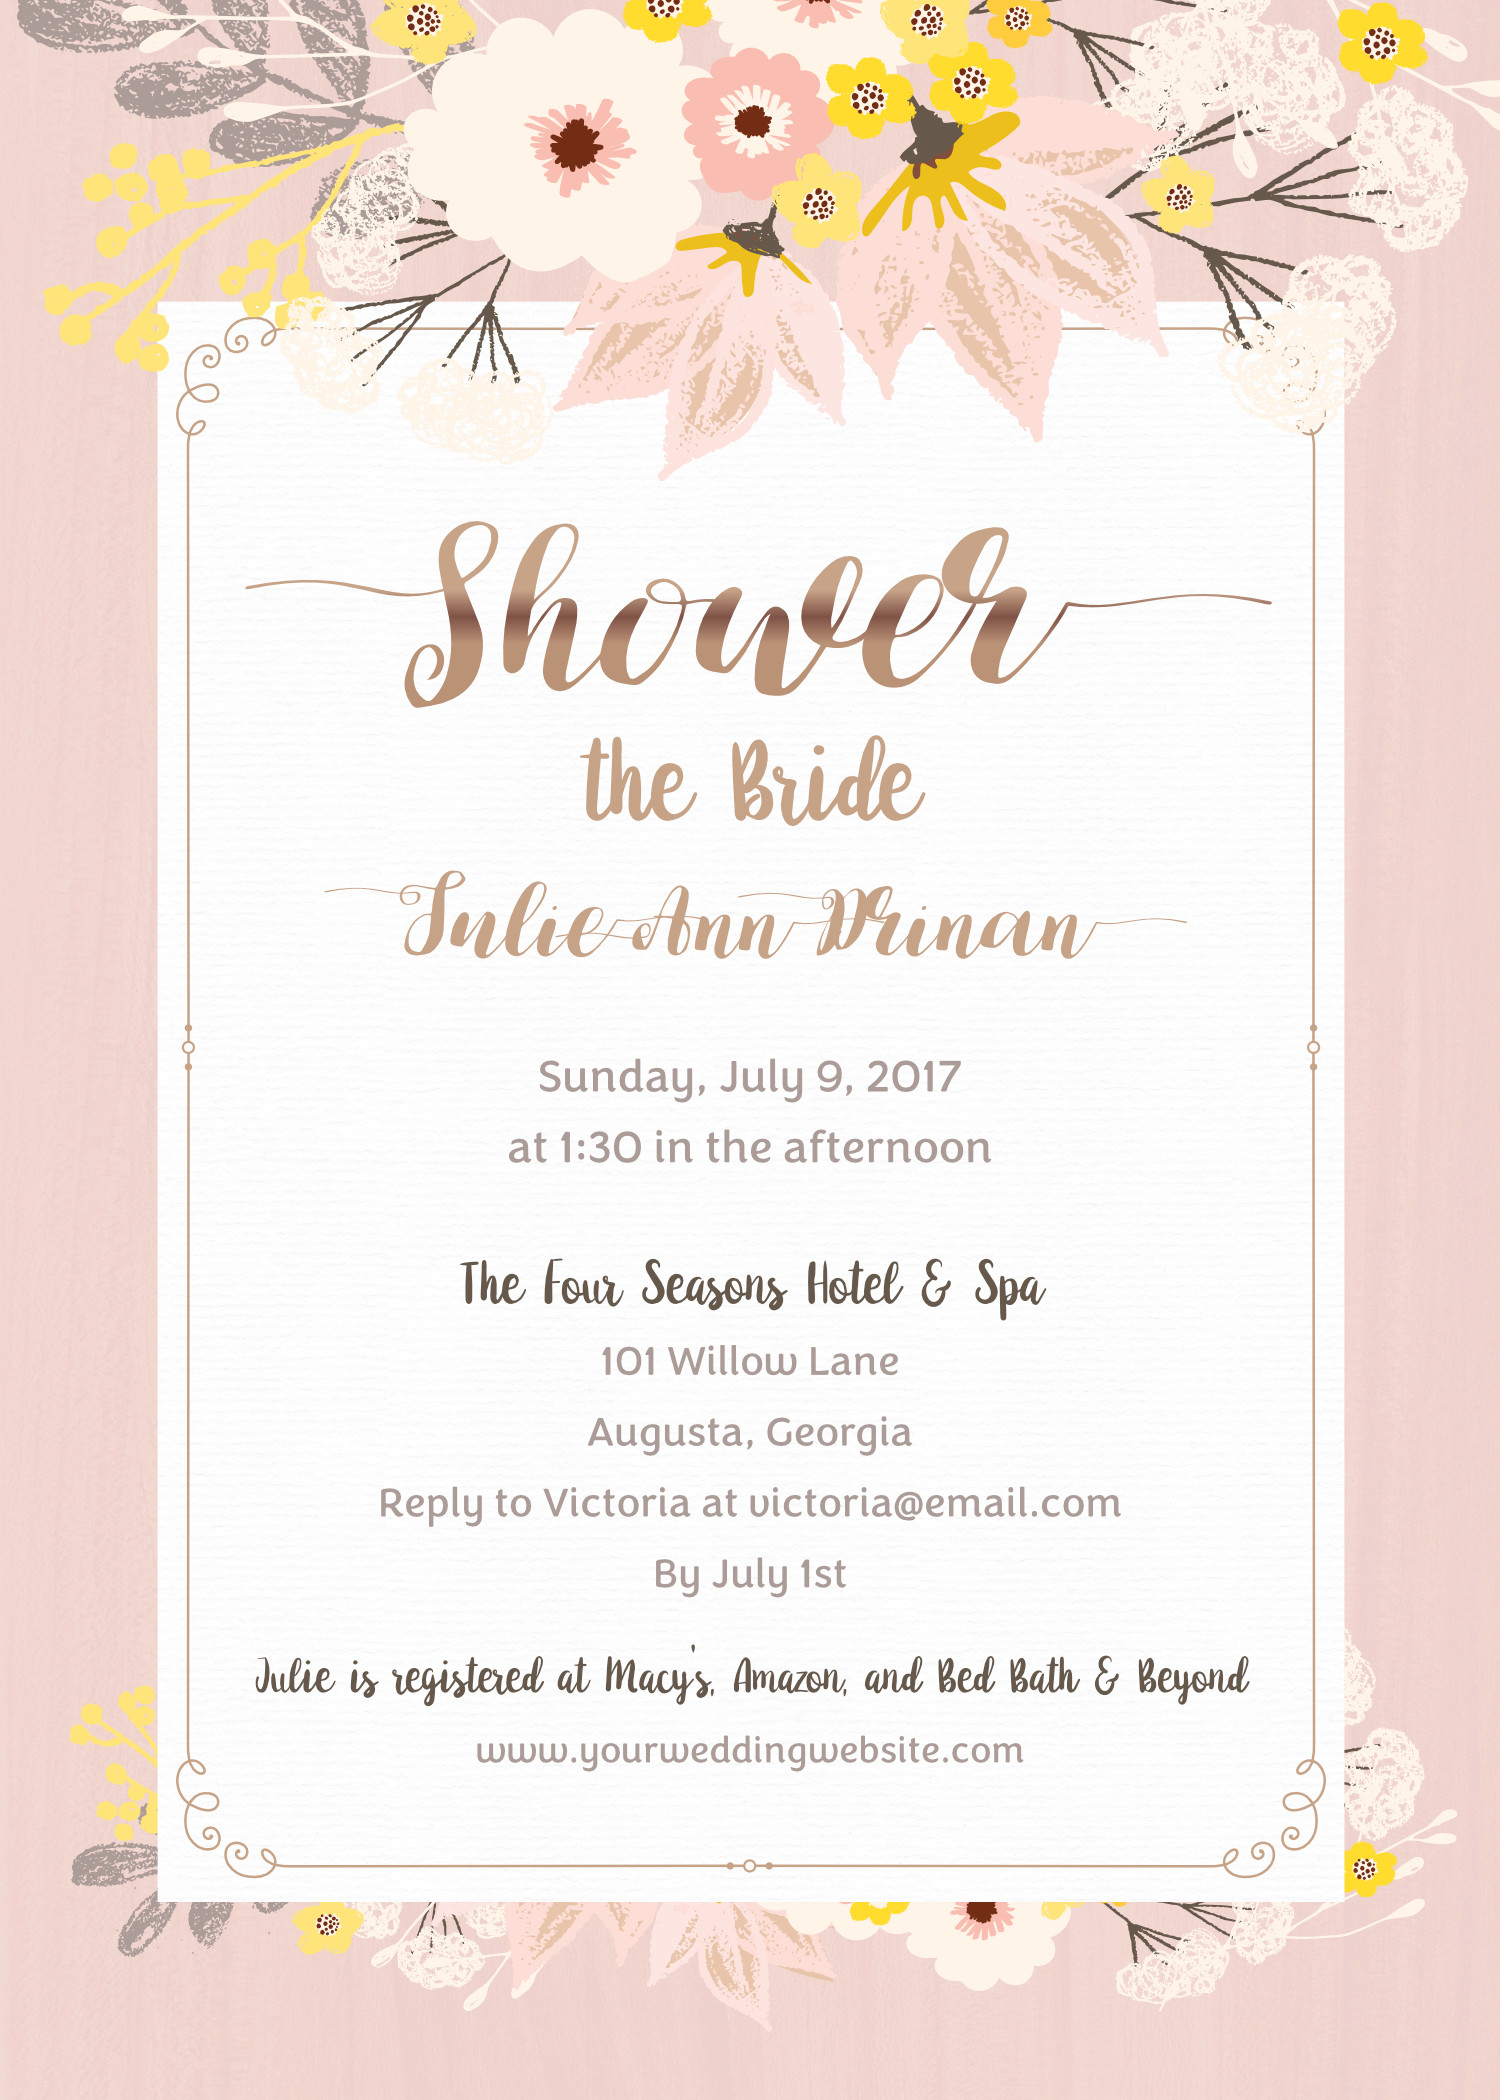 walmart invites chic marvelous shower to bridal make hi invitations